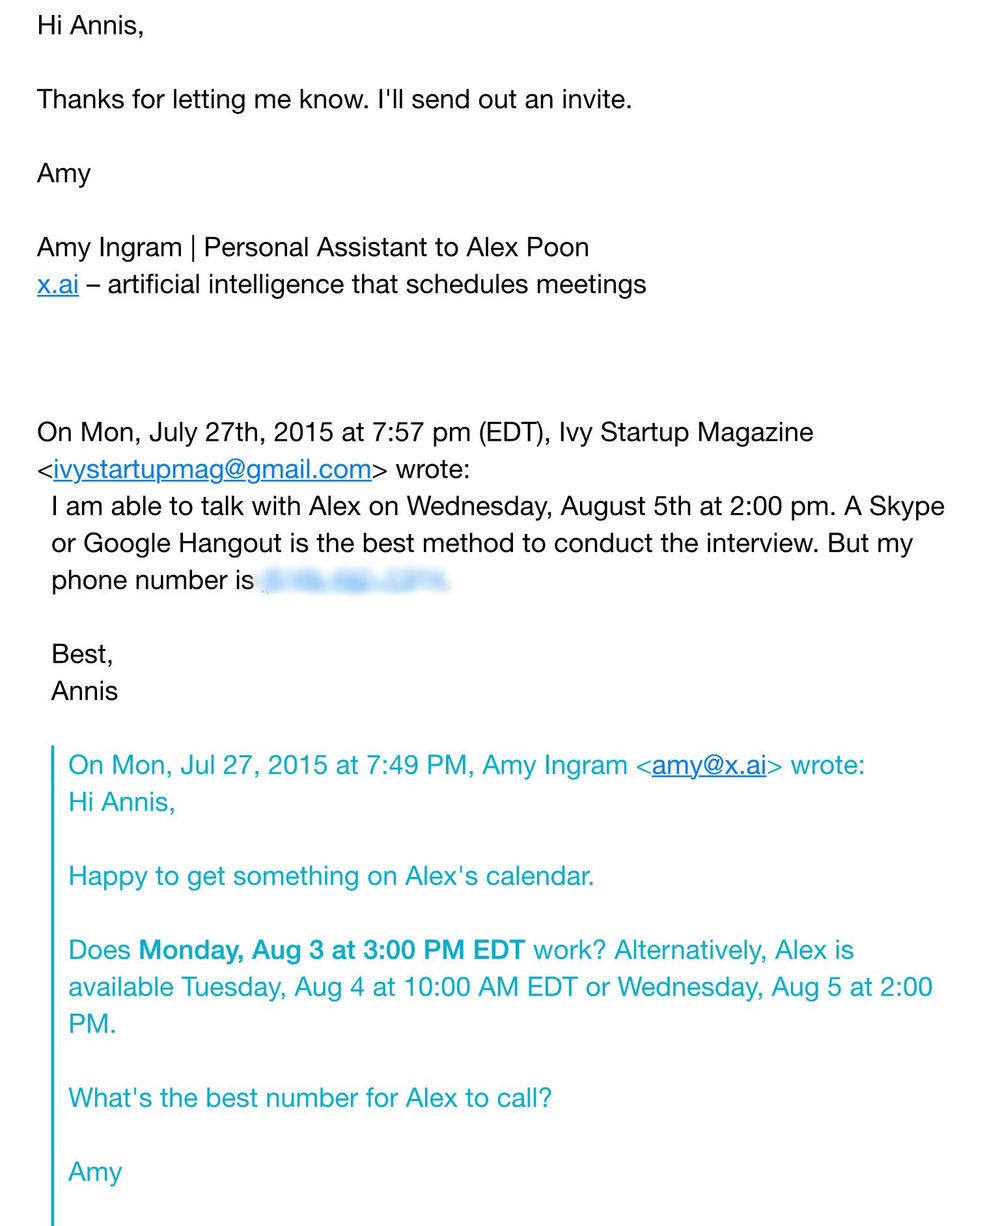 Our interview for Ivy Startup Mag was coordinated using Amy.